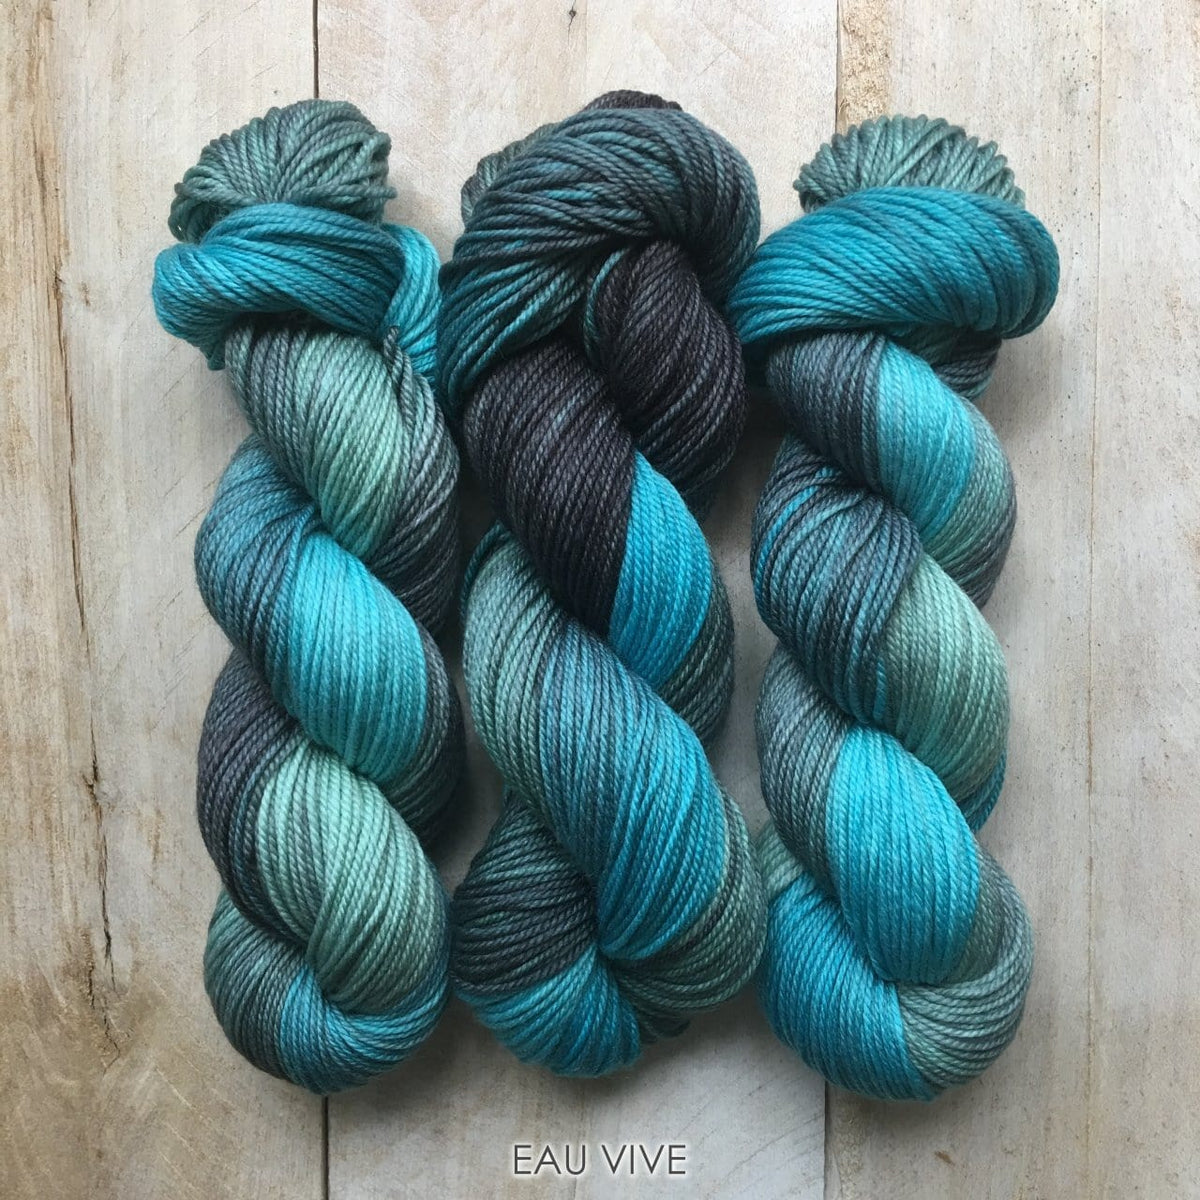 EAU VIVE by Louise Robert Design | DK PURE hand-dyed Variegated yarn